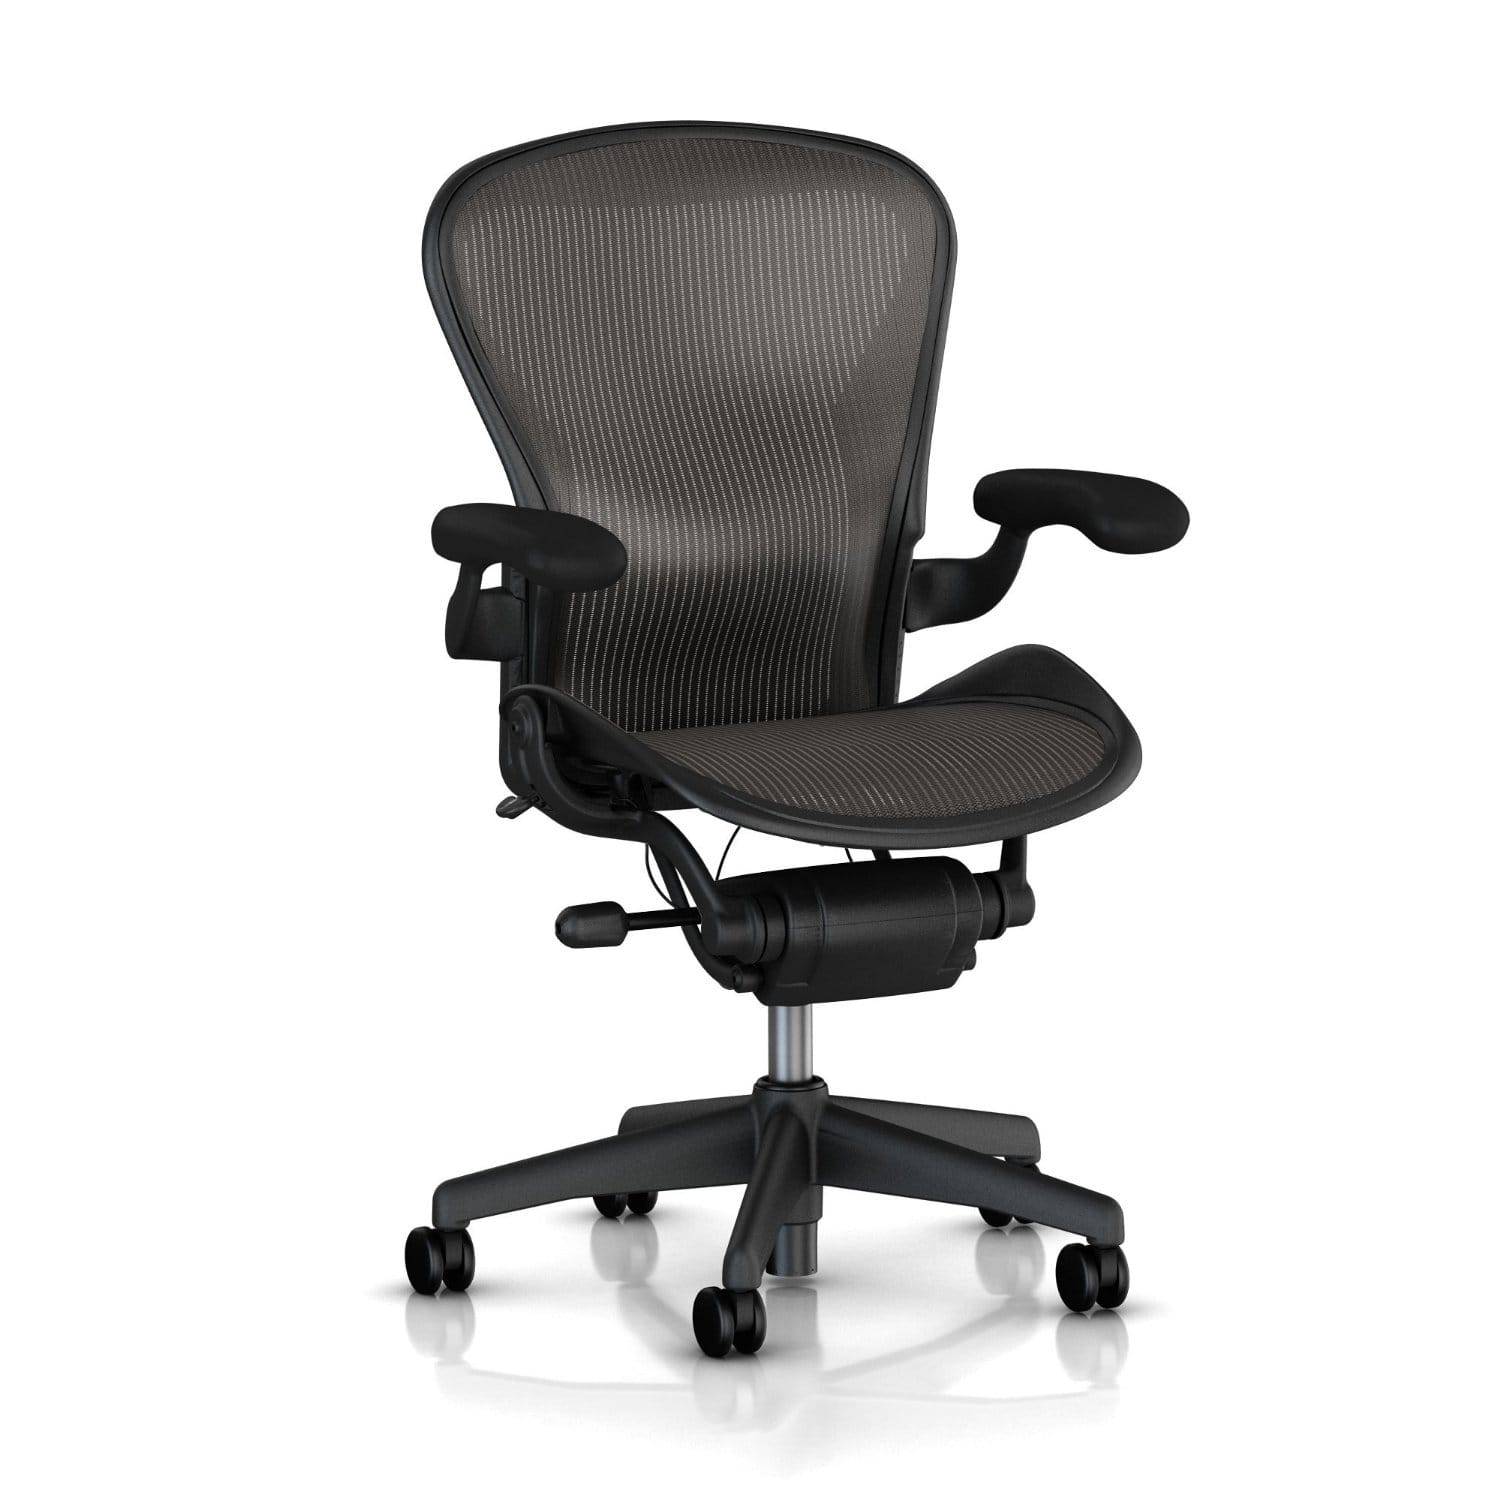 Herman Miller Aeron Chair - Highly Adjustable - Certified PreOwned from OfficeDesignsOutlet for $459.00 AC + Free Standard Shipping